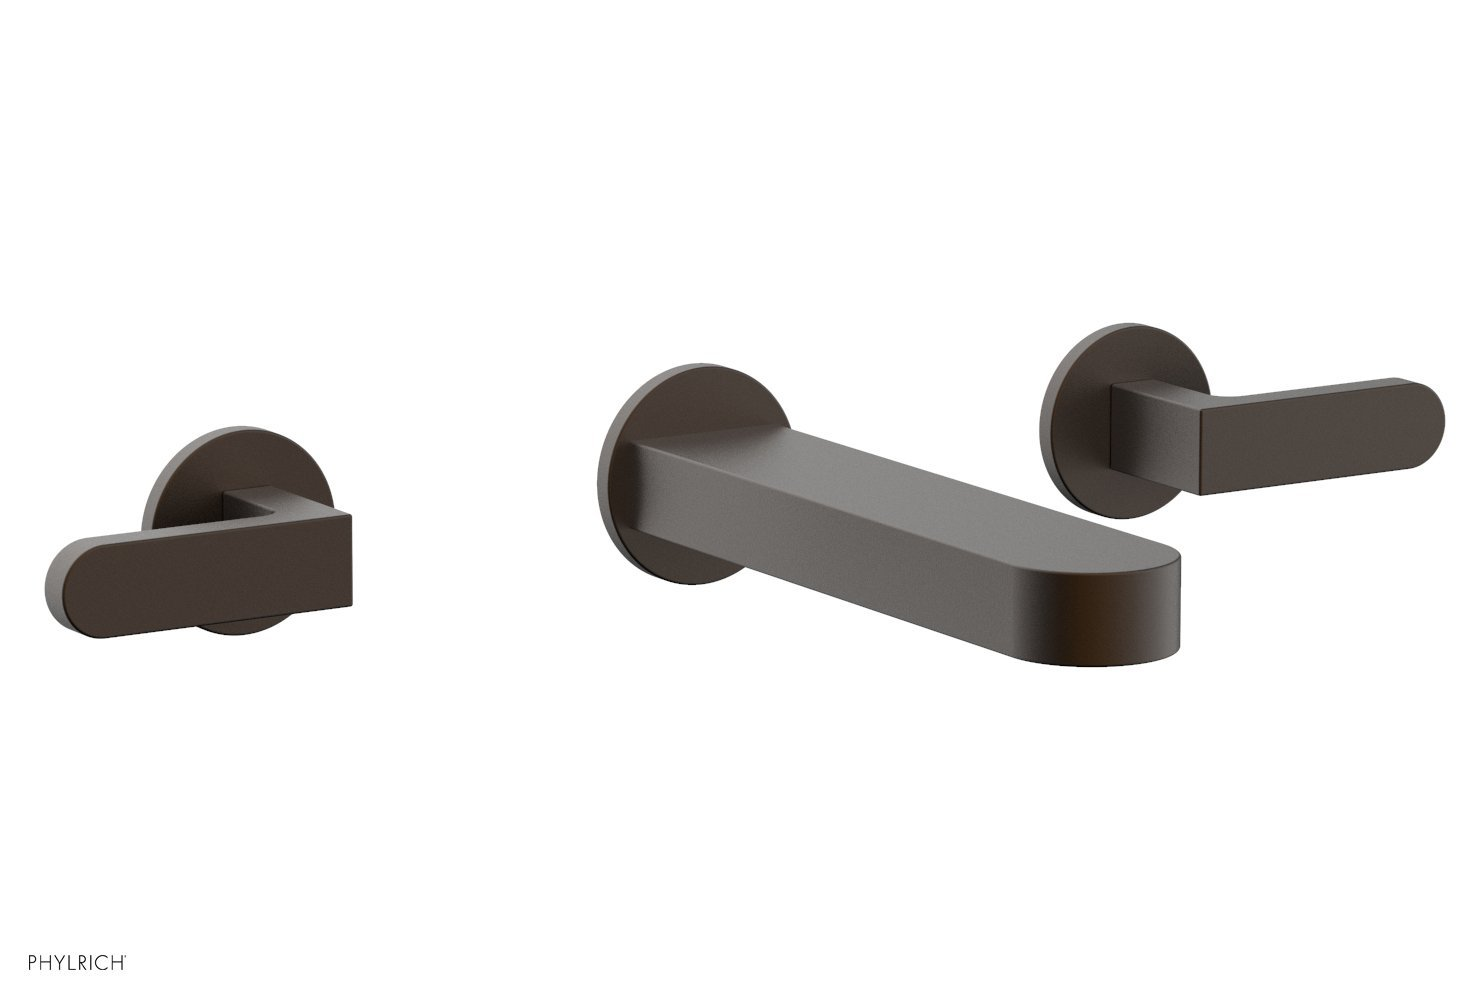 Phylrich 183-12-10B ROND Wall Lavatory Set - Lever Handles - Oil Rubbed Bronze